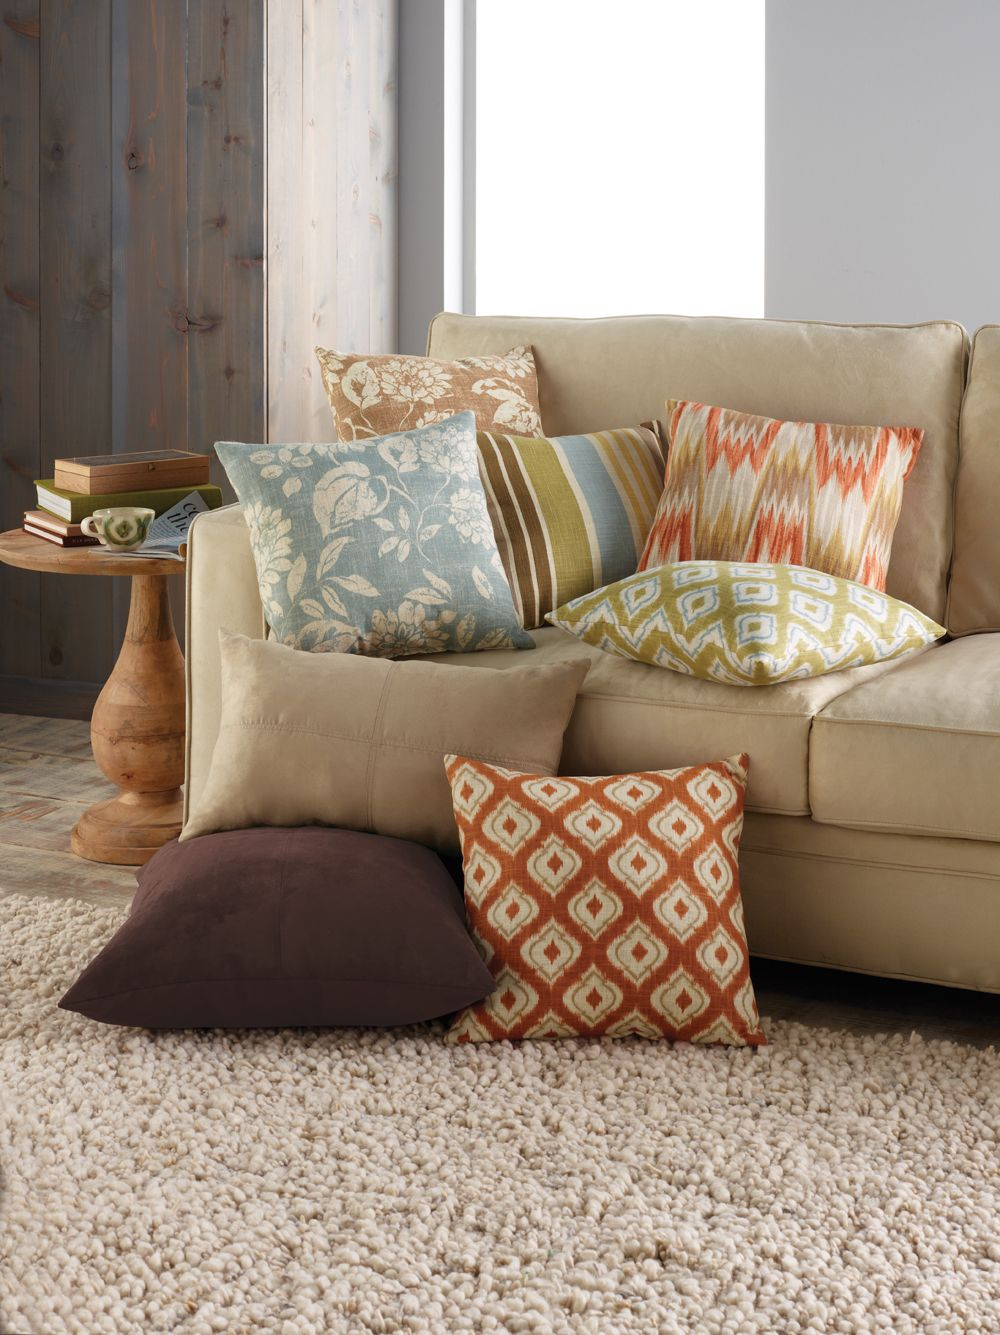 Throw pillows galore. #homedecor #Kohls Home Style Pinterest Throw pillows, Pillows and ...